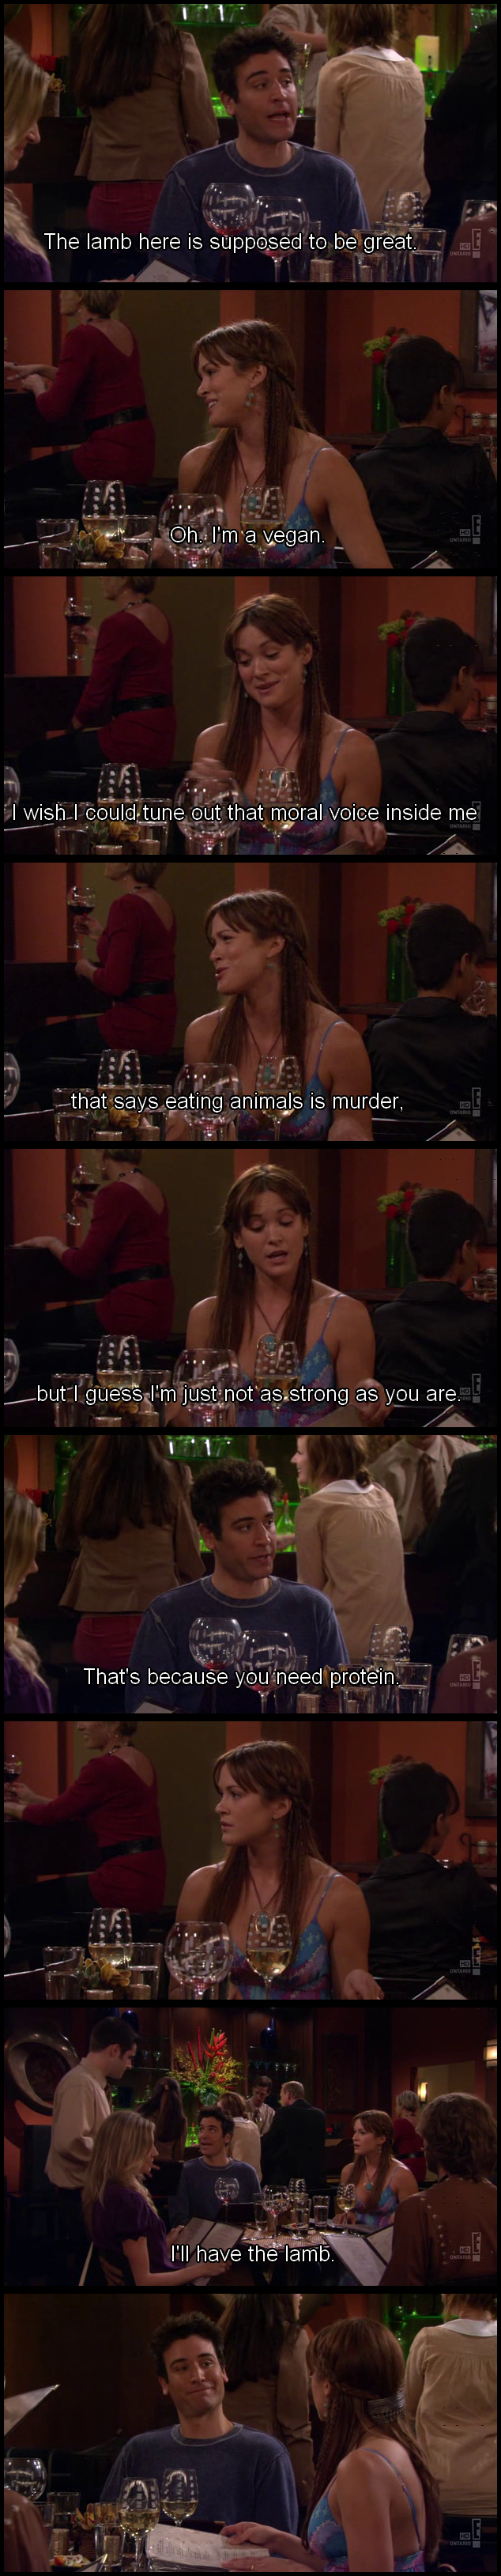 How I Met Your Mother scene of vegan getting owned